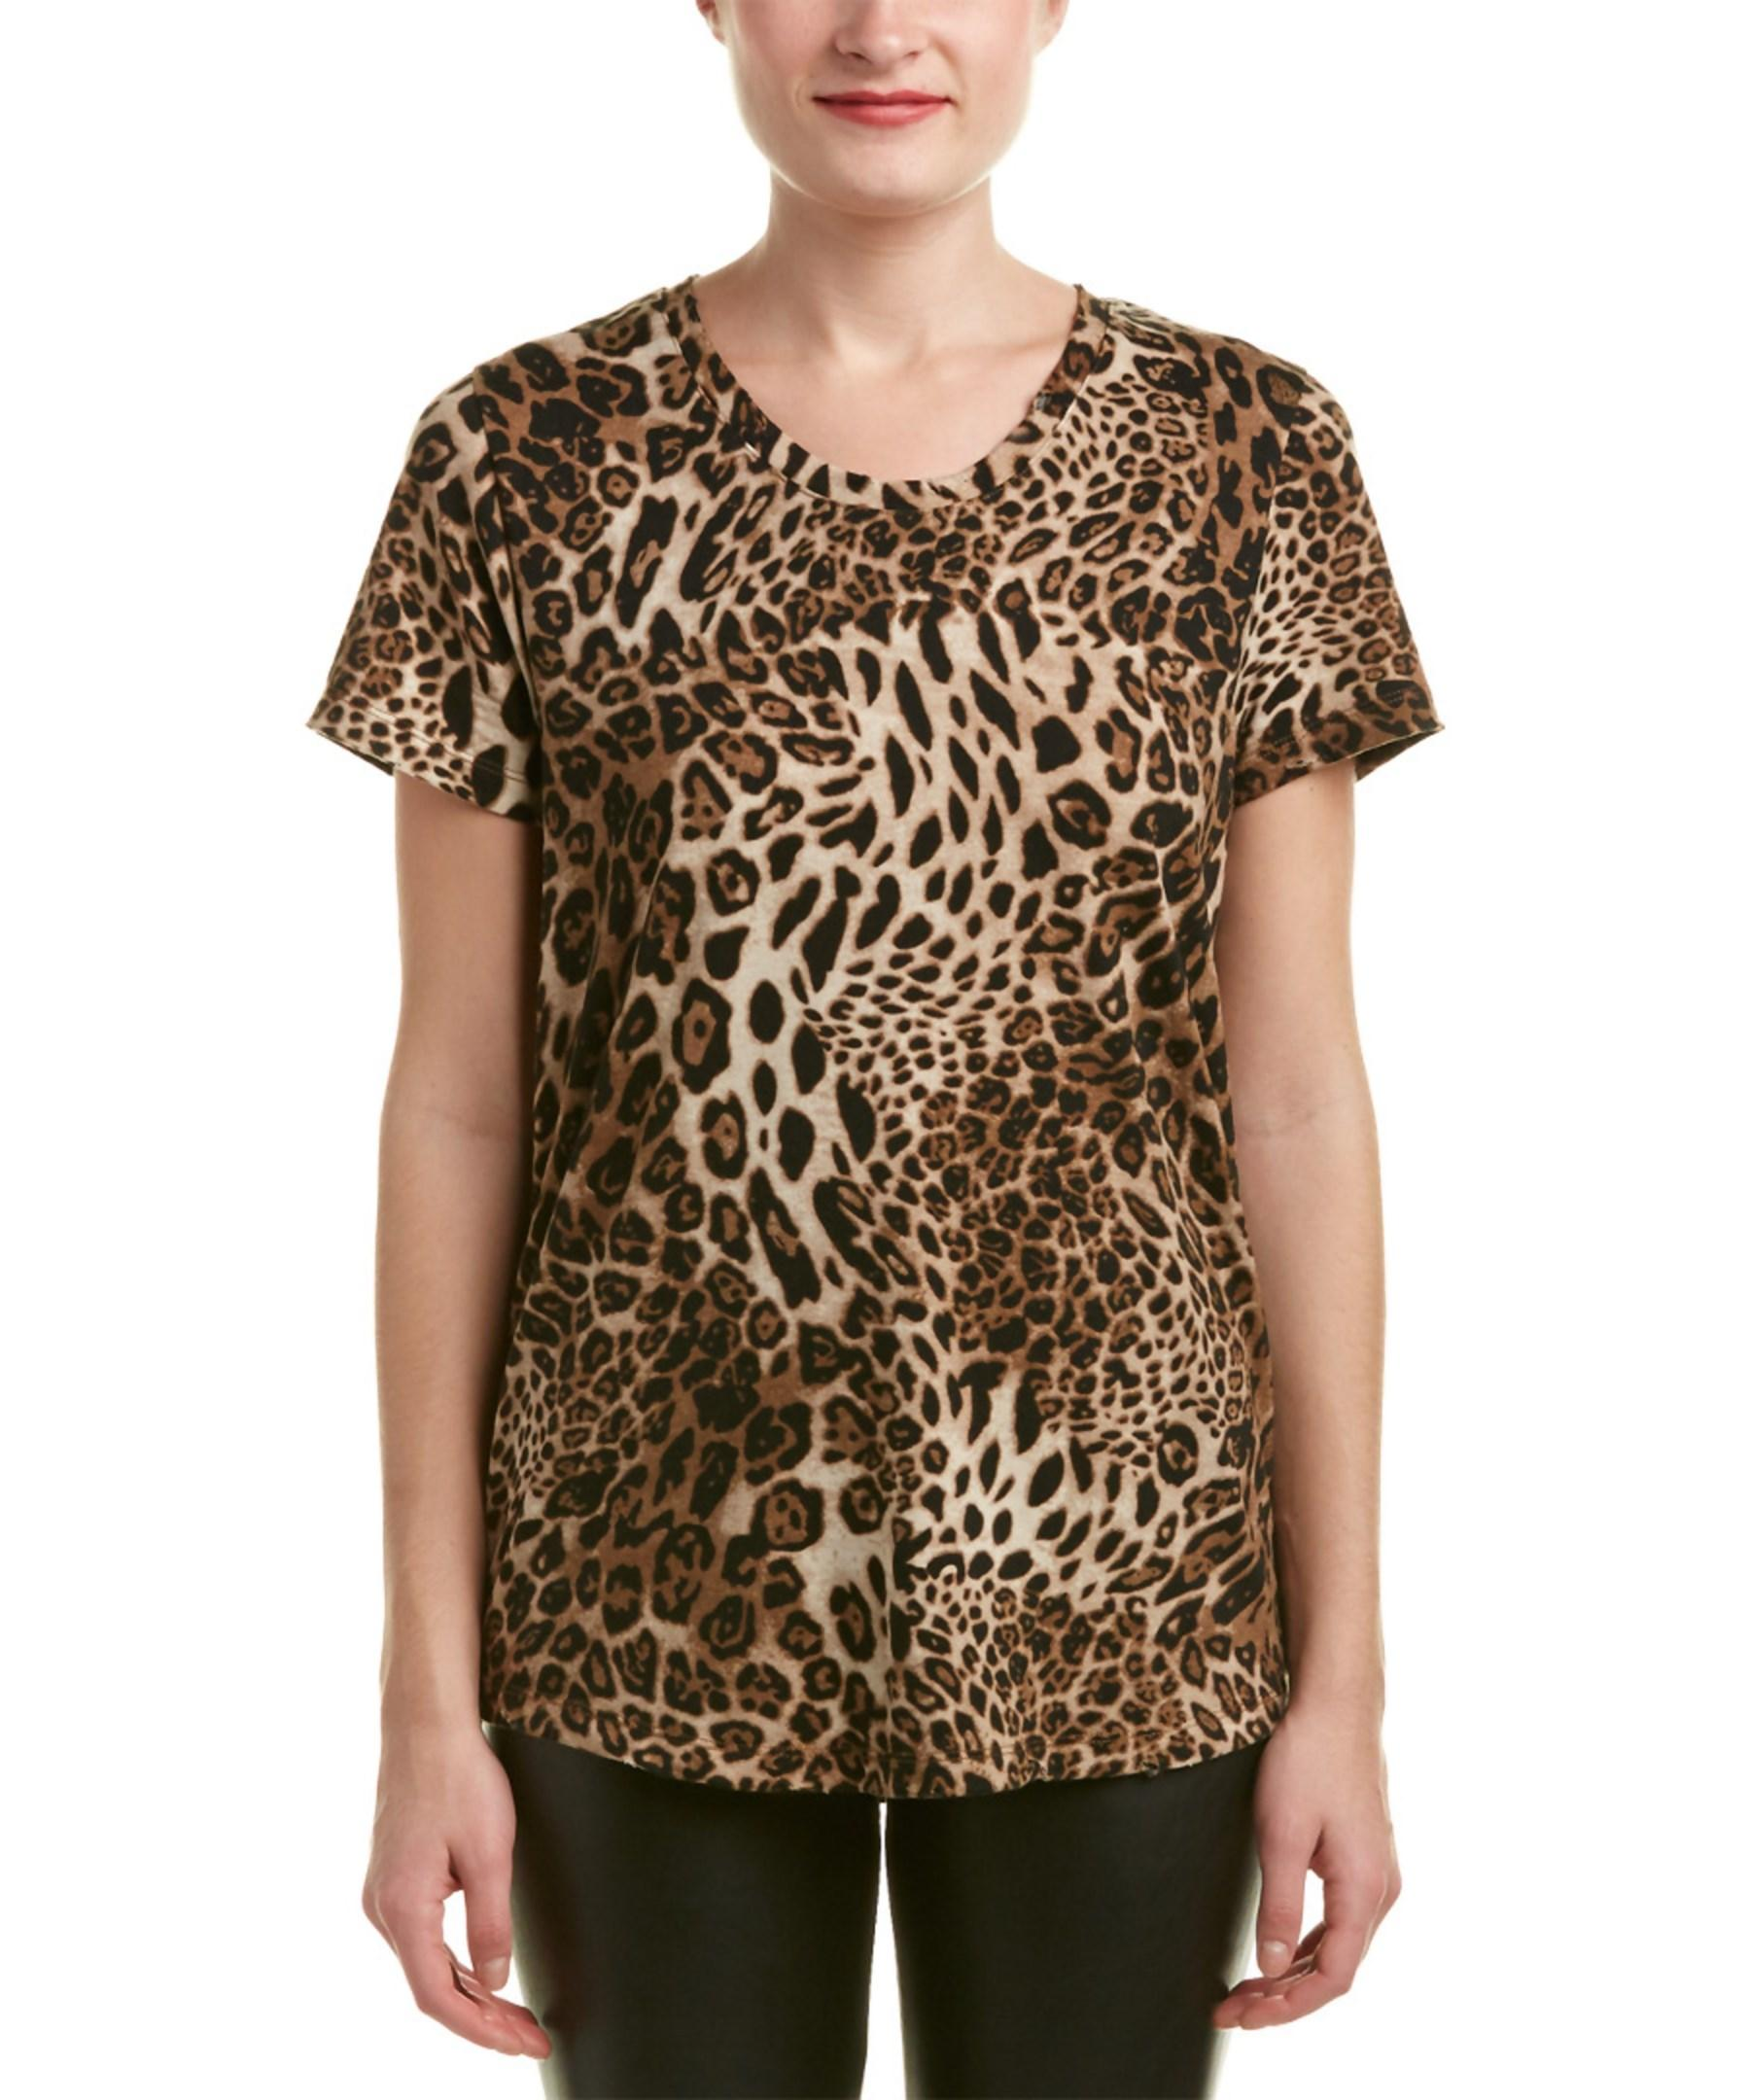 Be Unique. Shop leopard print t-shirts created by independent artists from around the globe. We print the highest quality leopard print t-shirts on the internet.